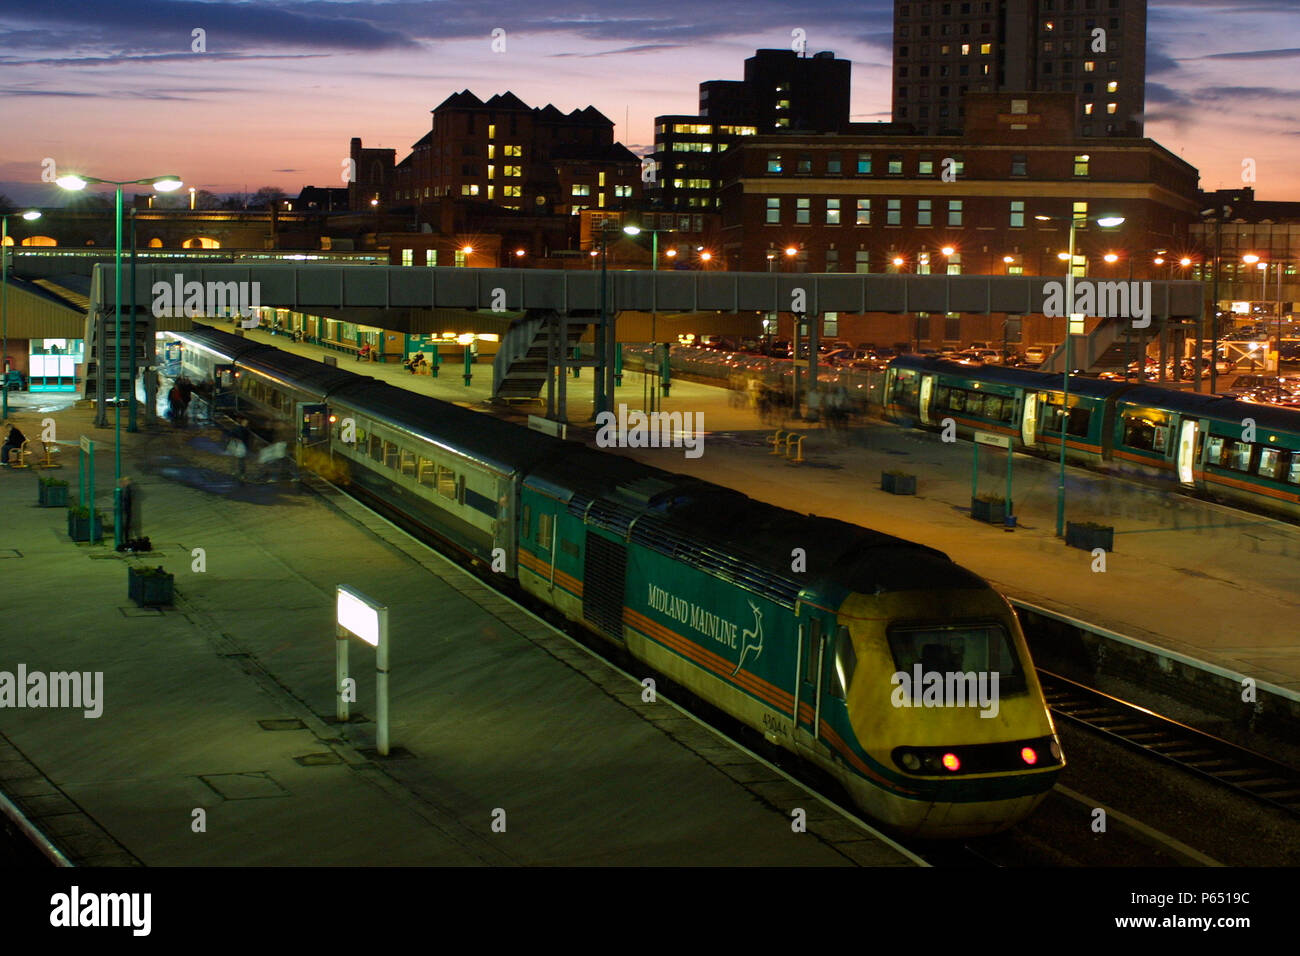 A London St Pancras bound Midland Mainline operated HST picks up passengers at Leicester Station. 2003. - Stock Image